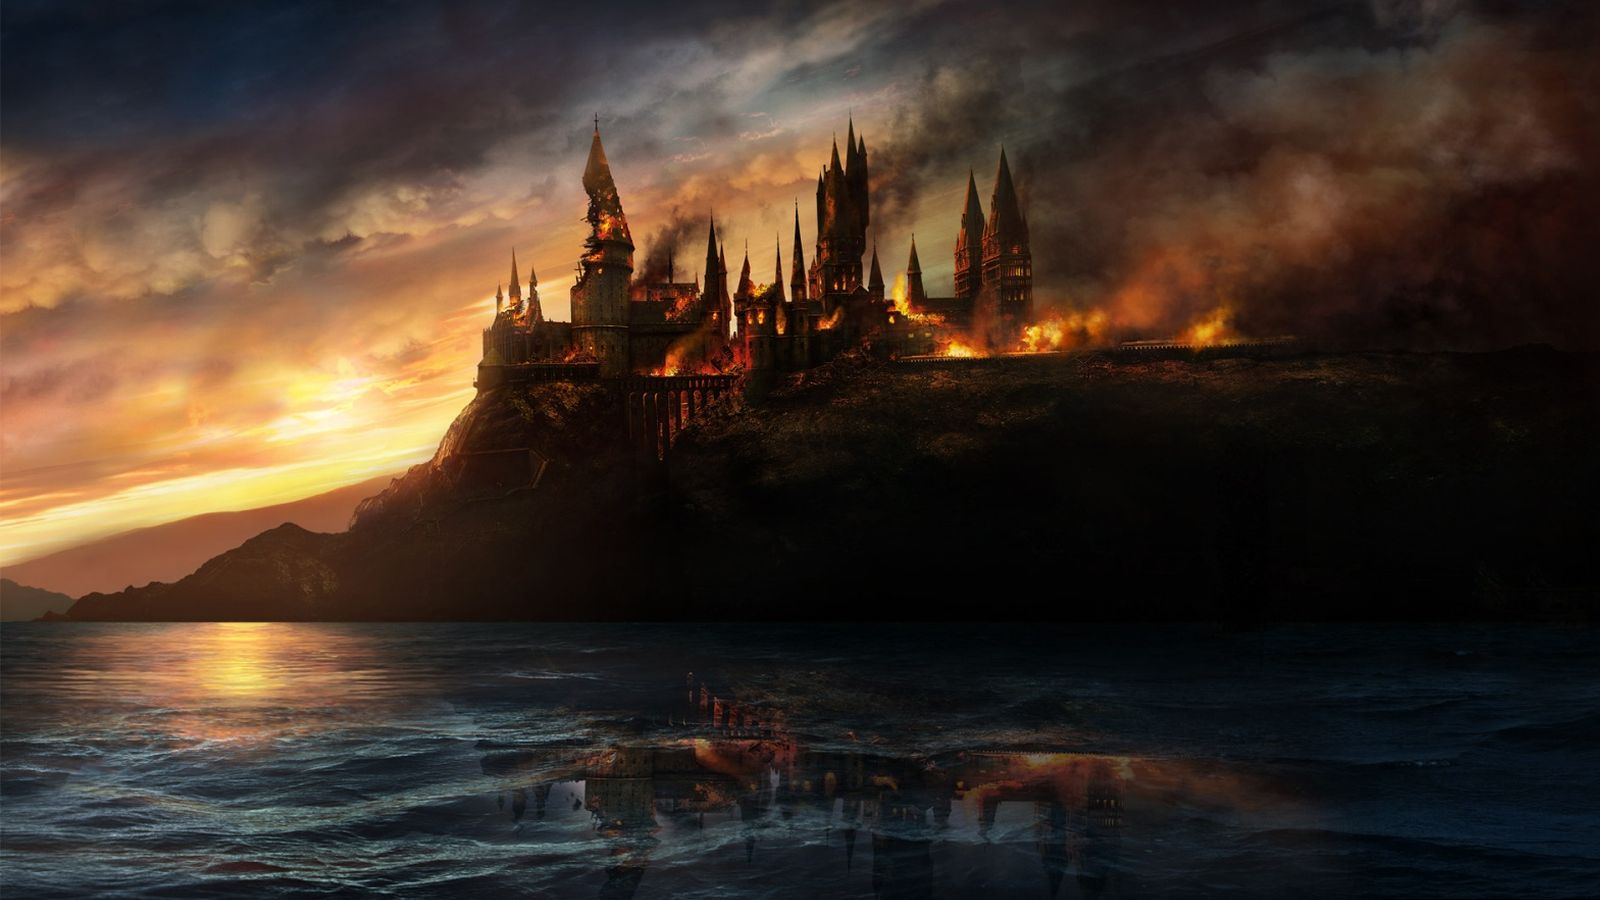 harry_potter_and_the_deathly_hallows-wallpaper-1600x900.jpg